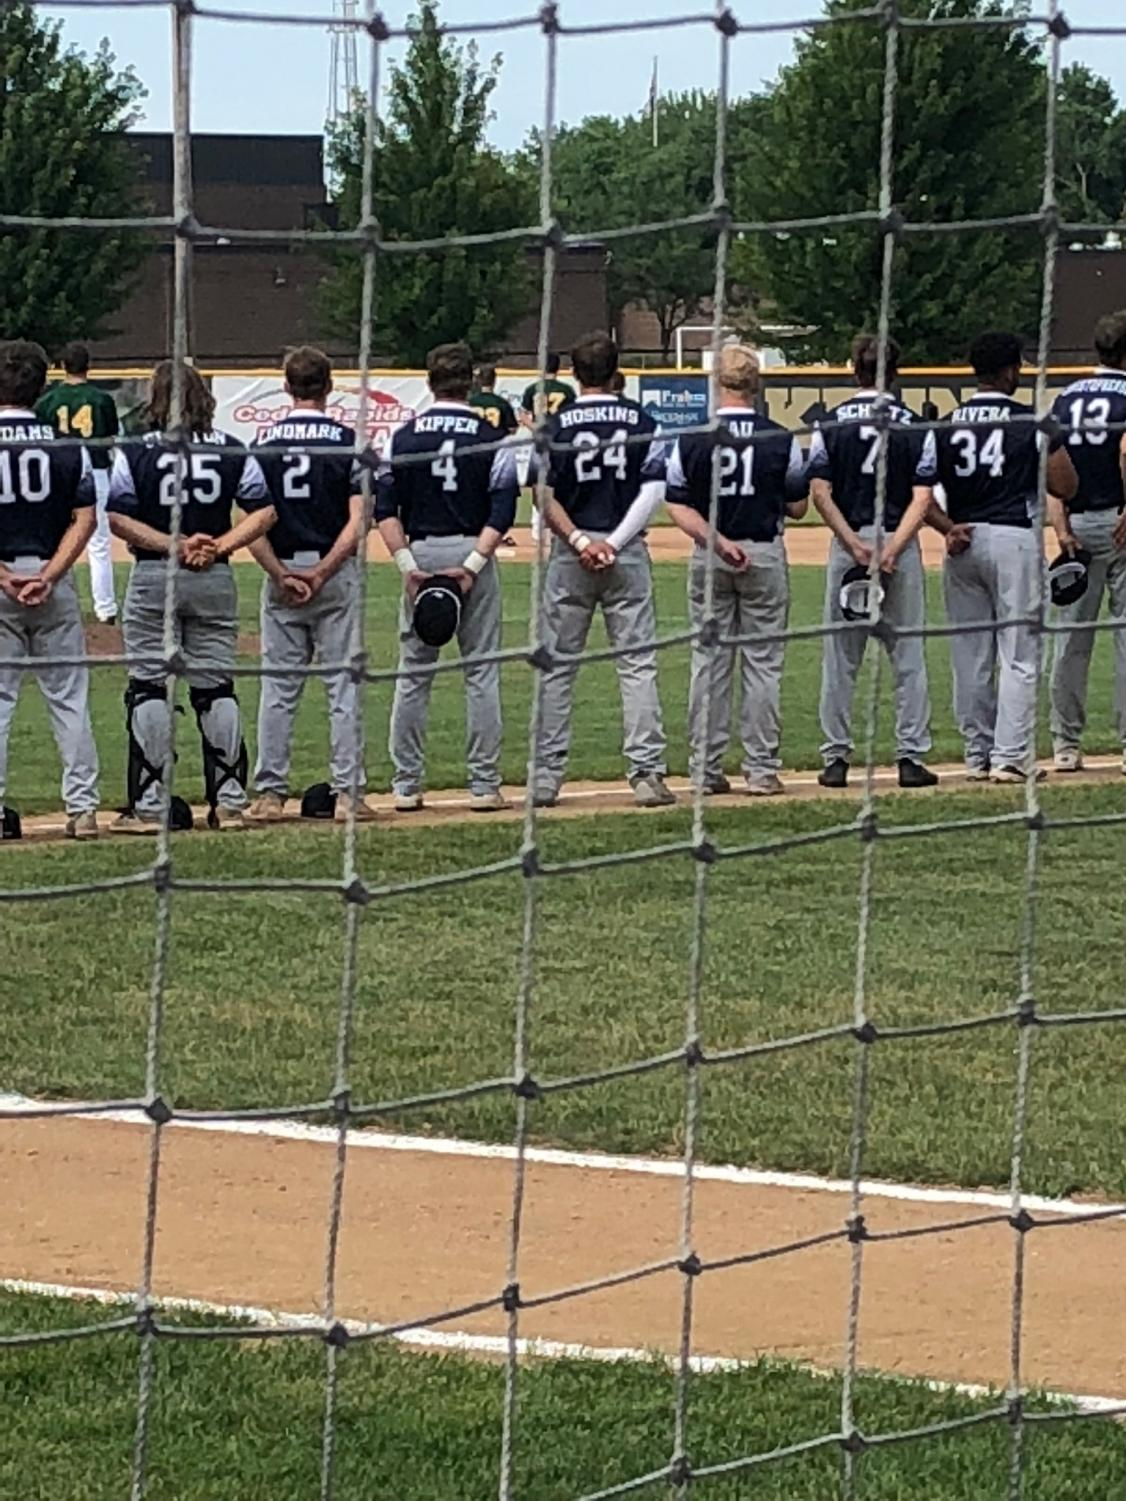 Pleasant Valley Baseball team standings for the national anthem before playing in the hot, summer heat.